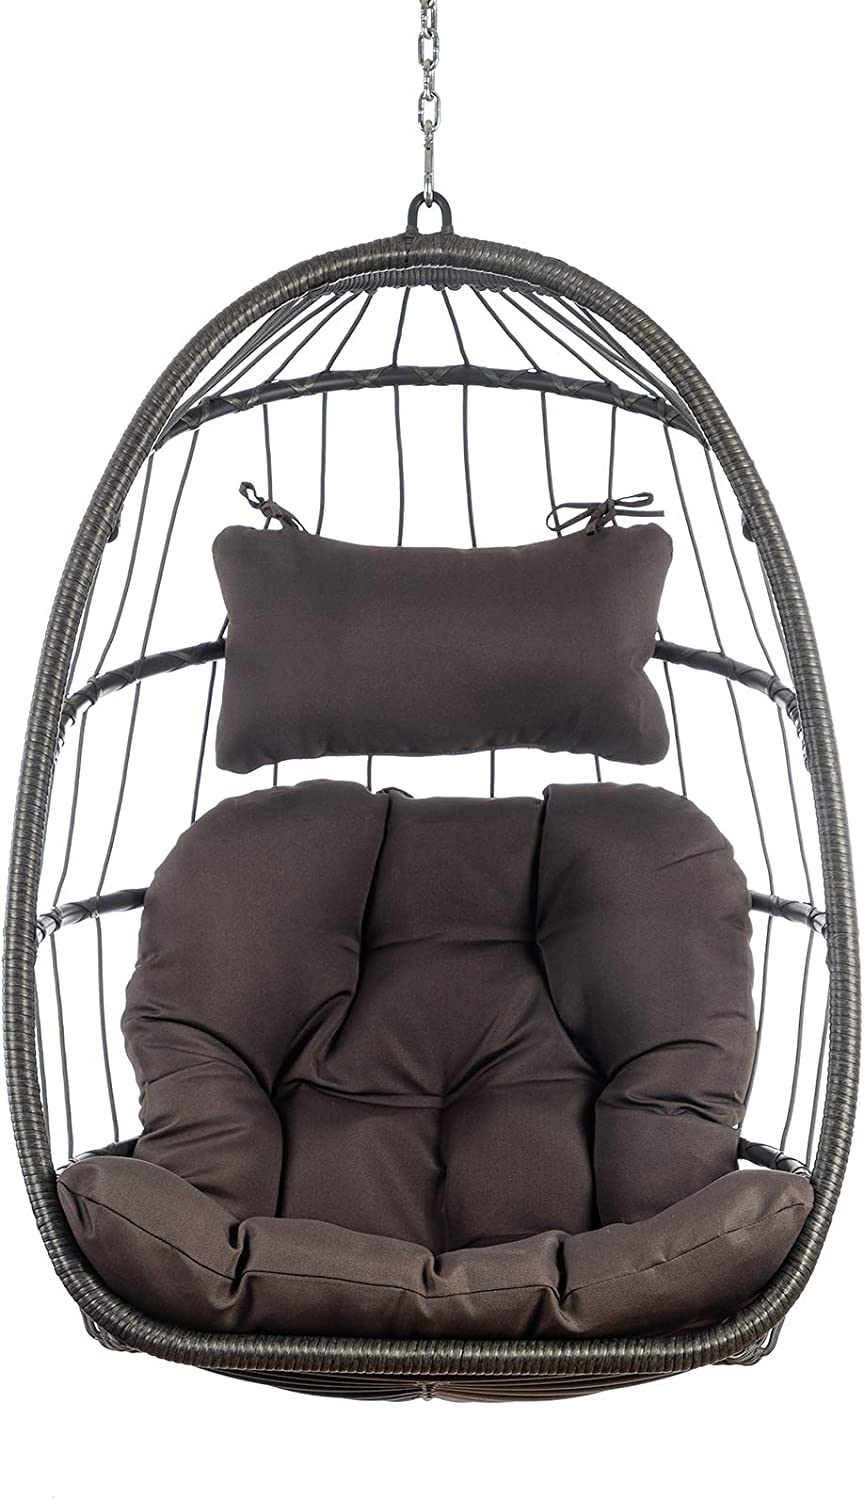 Lomubue Brand Cheap Sale Venue Hanging Egg Chair Hammock Outdoor Rocker Indoor Today's only